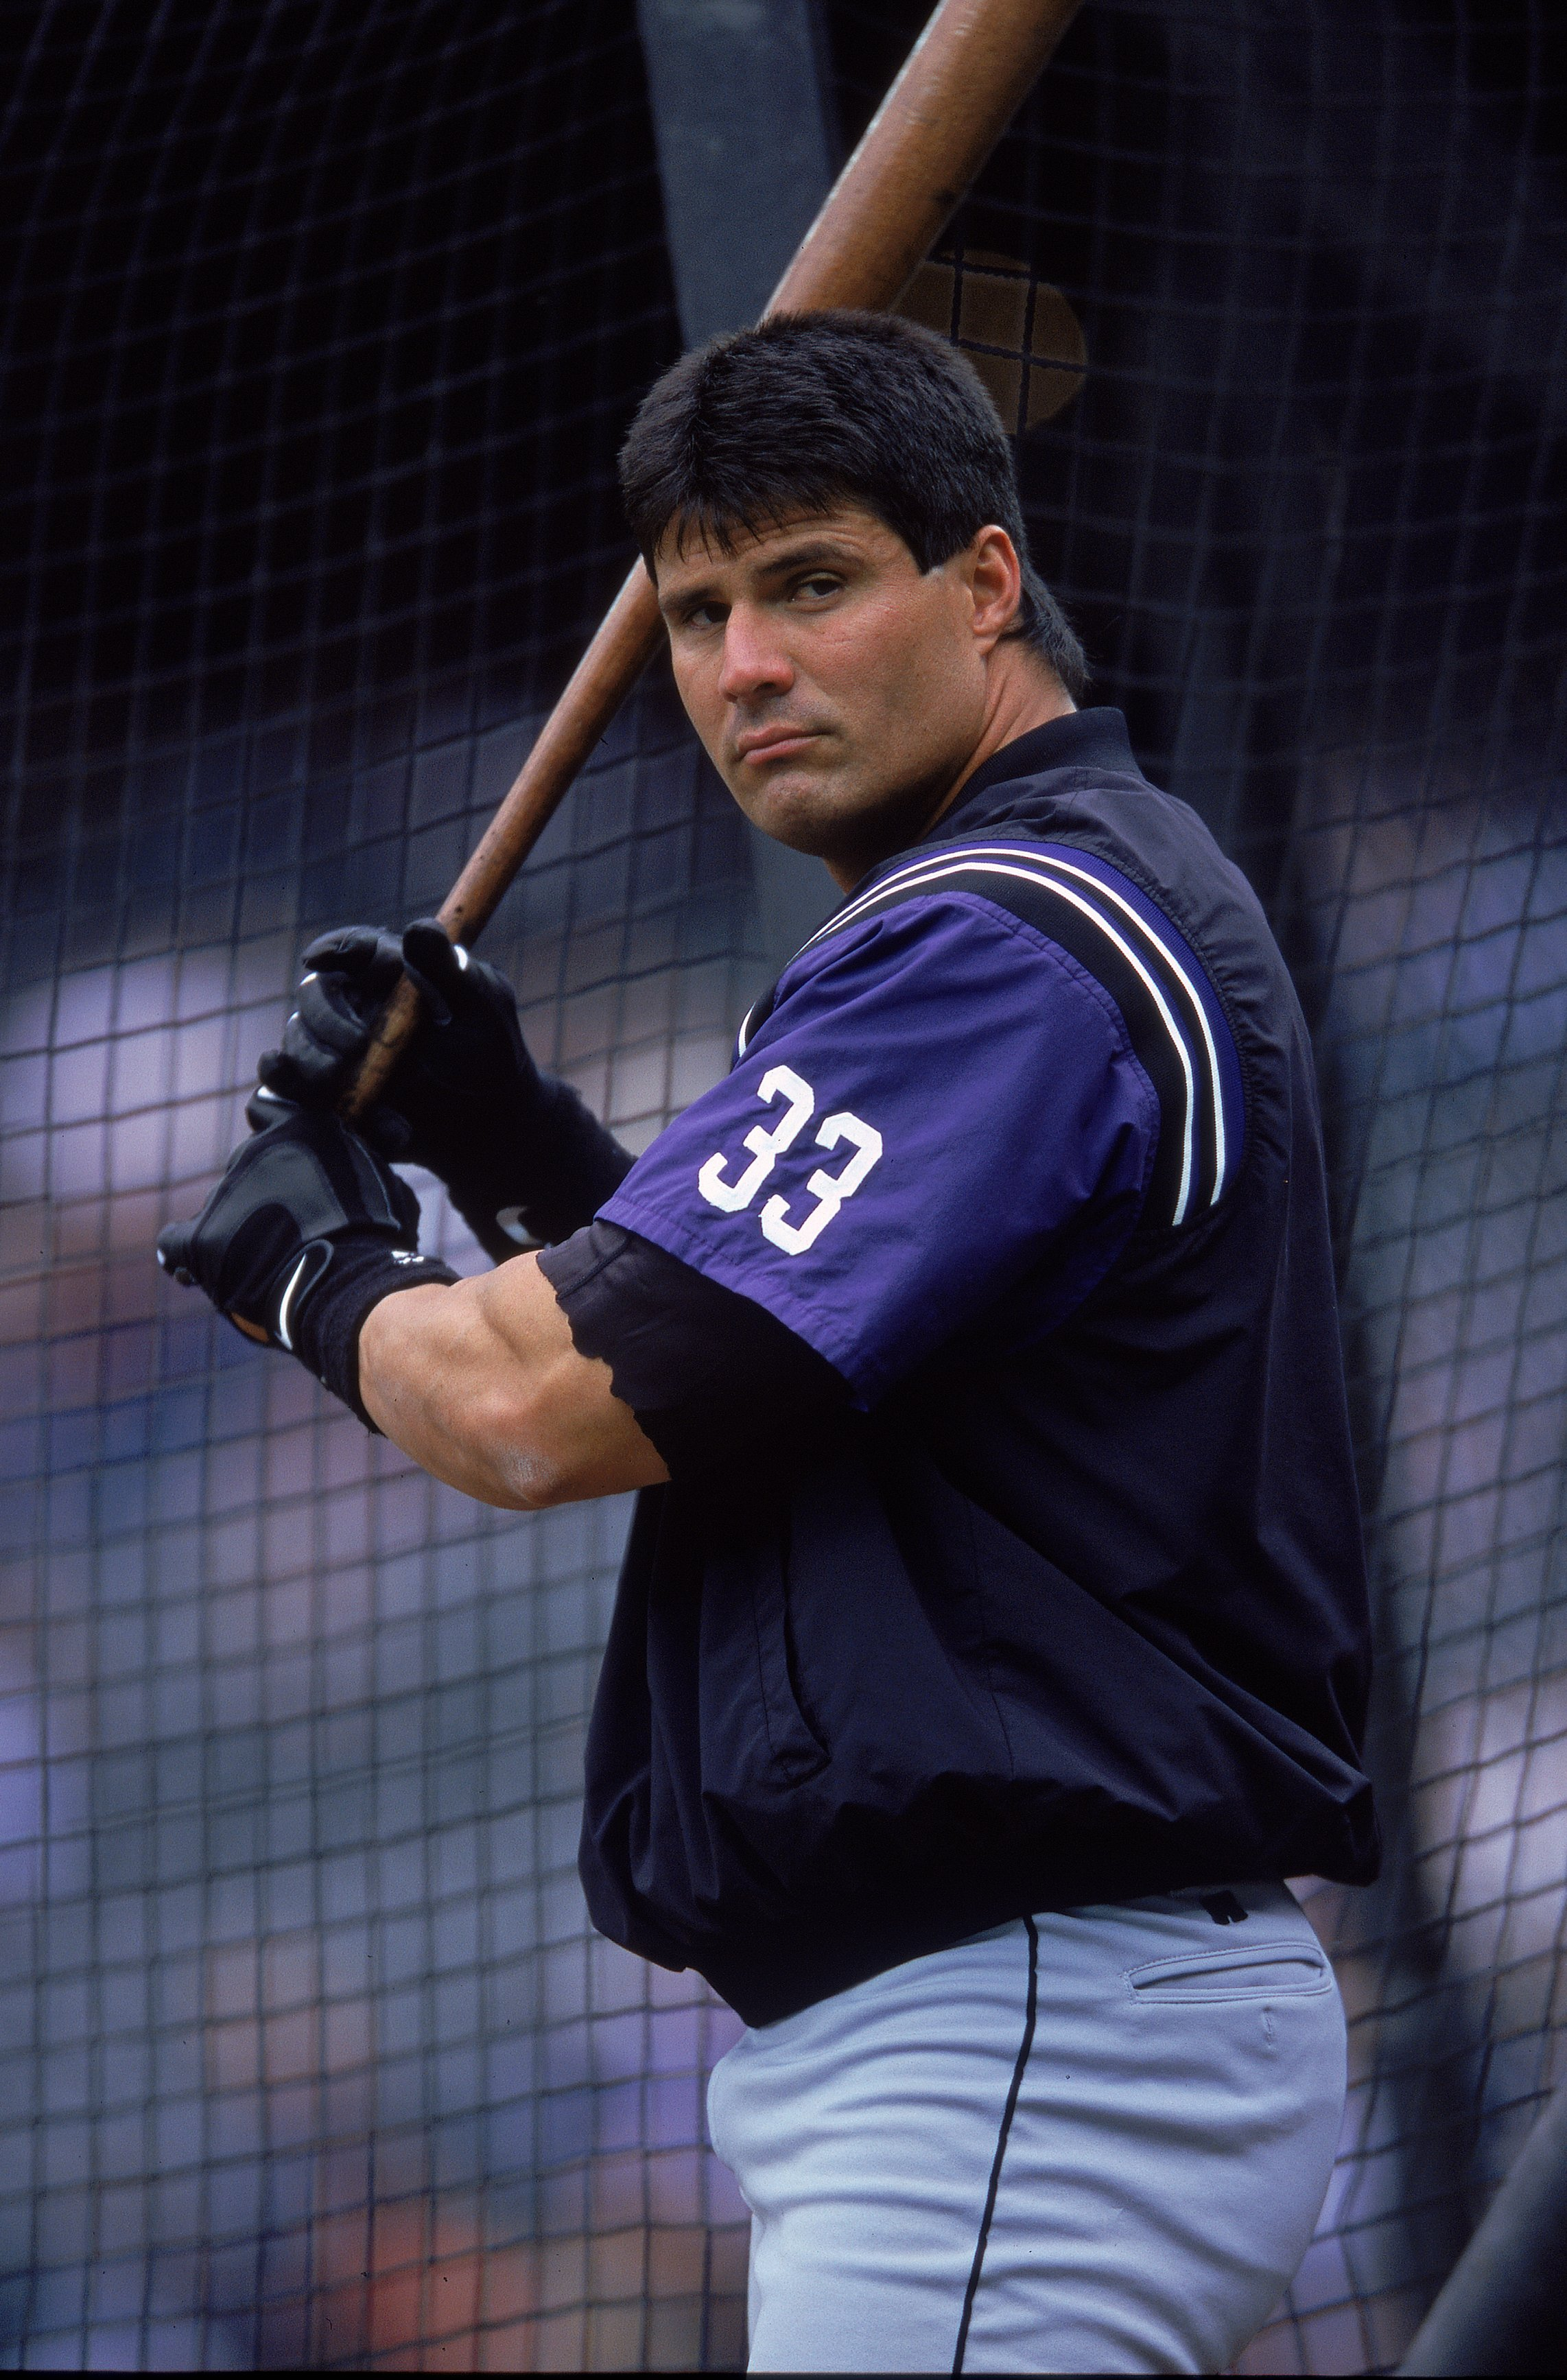 21 May 2000: Jose Canseco #33 of the Tampa Bay Devil Rays at batting practice before the game against the Seattle Mariners at the Safeco Field in Seattle, Washington. The Mariners defeated the Devil Rays 8-4.Mandatory Credit: Otto Greule Jr.  /Allsport